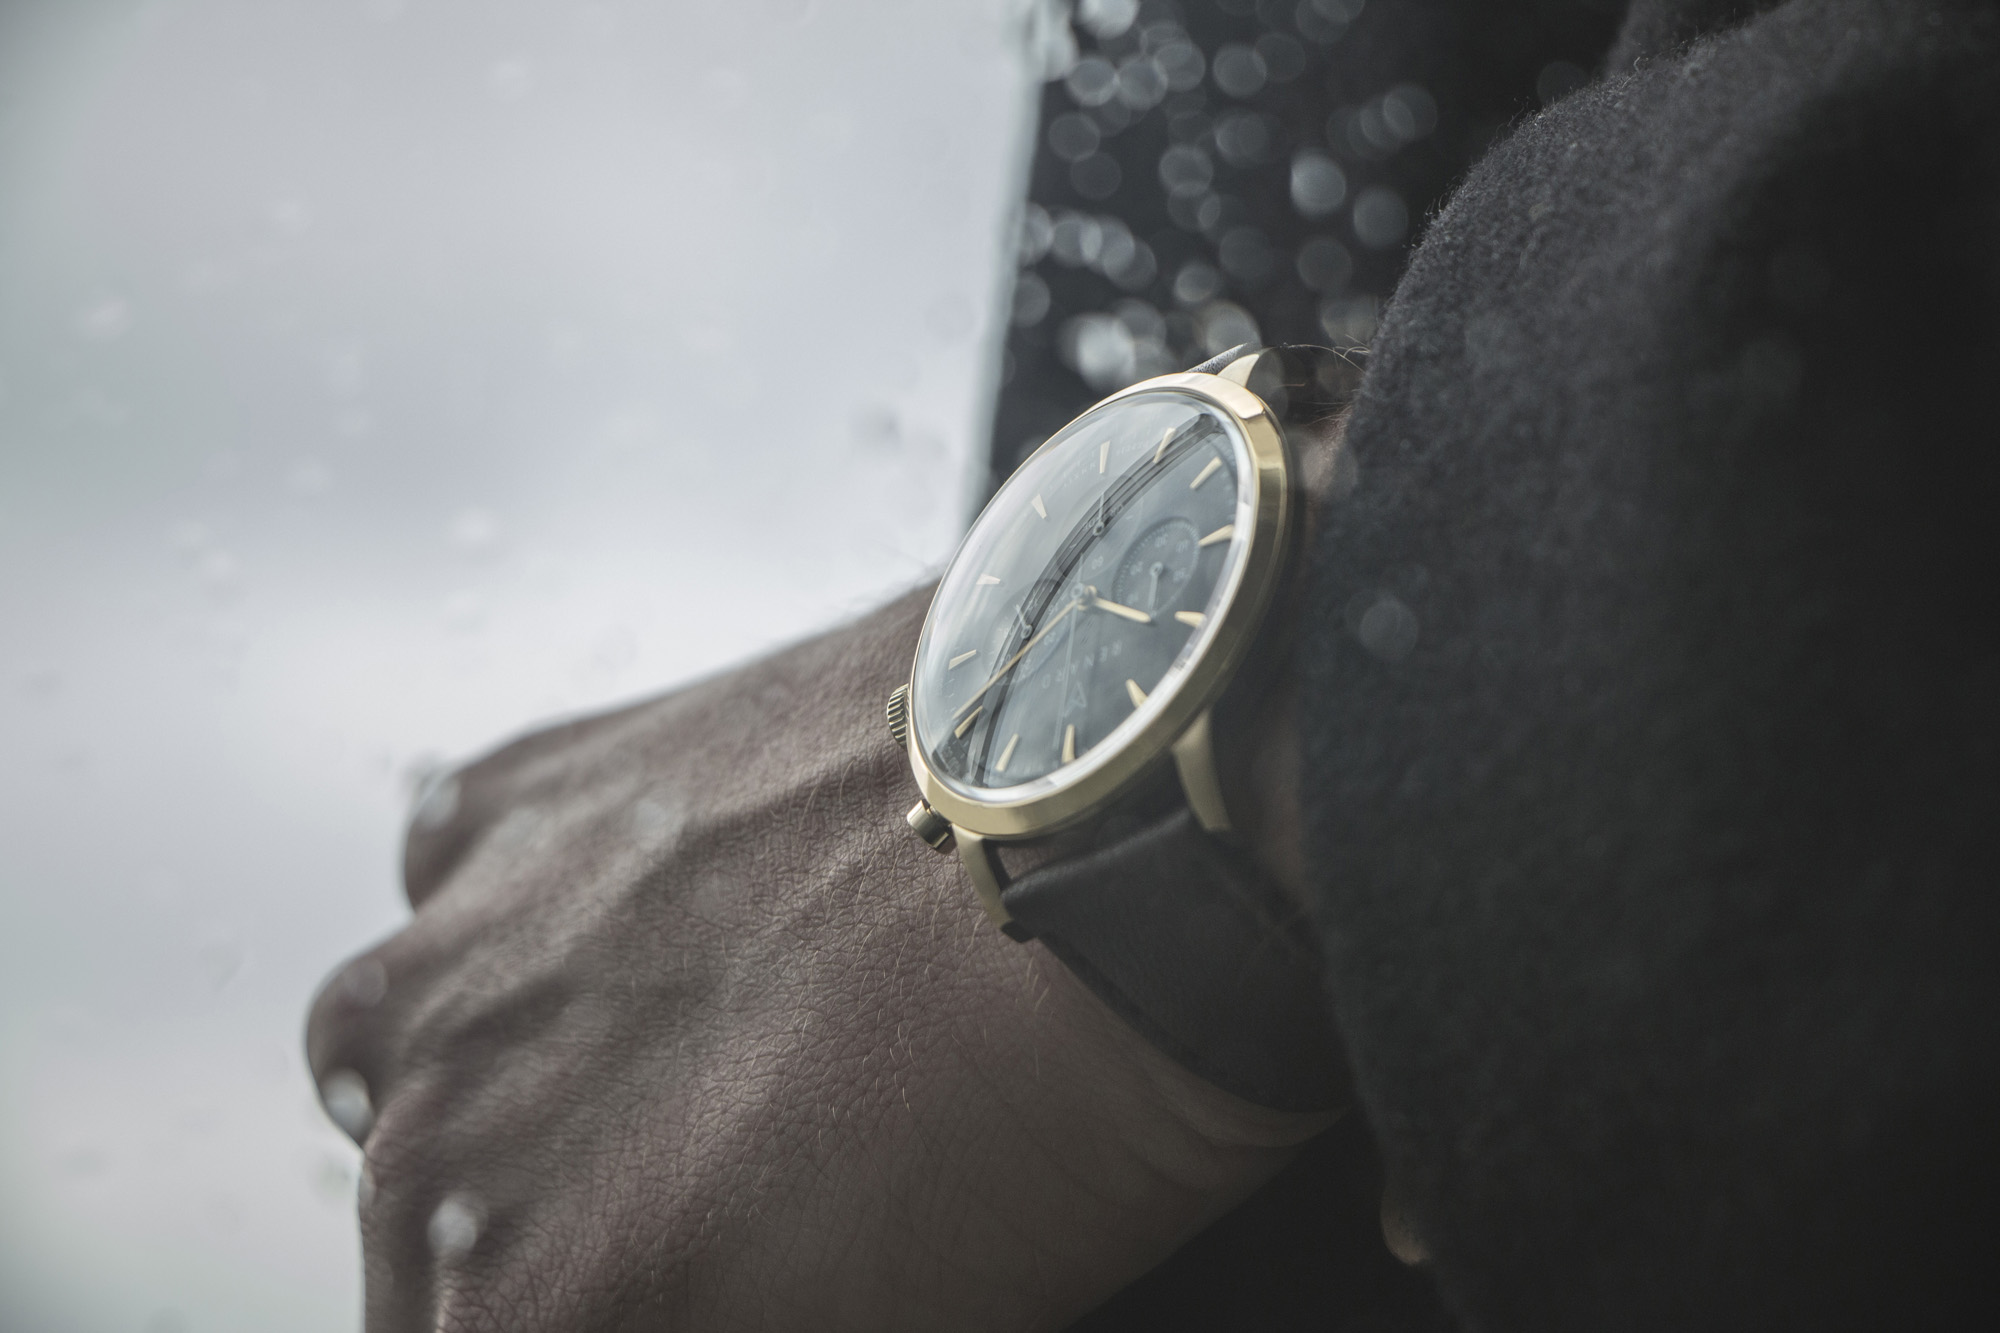 5 Tips for photographing lifestyle watches